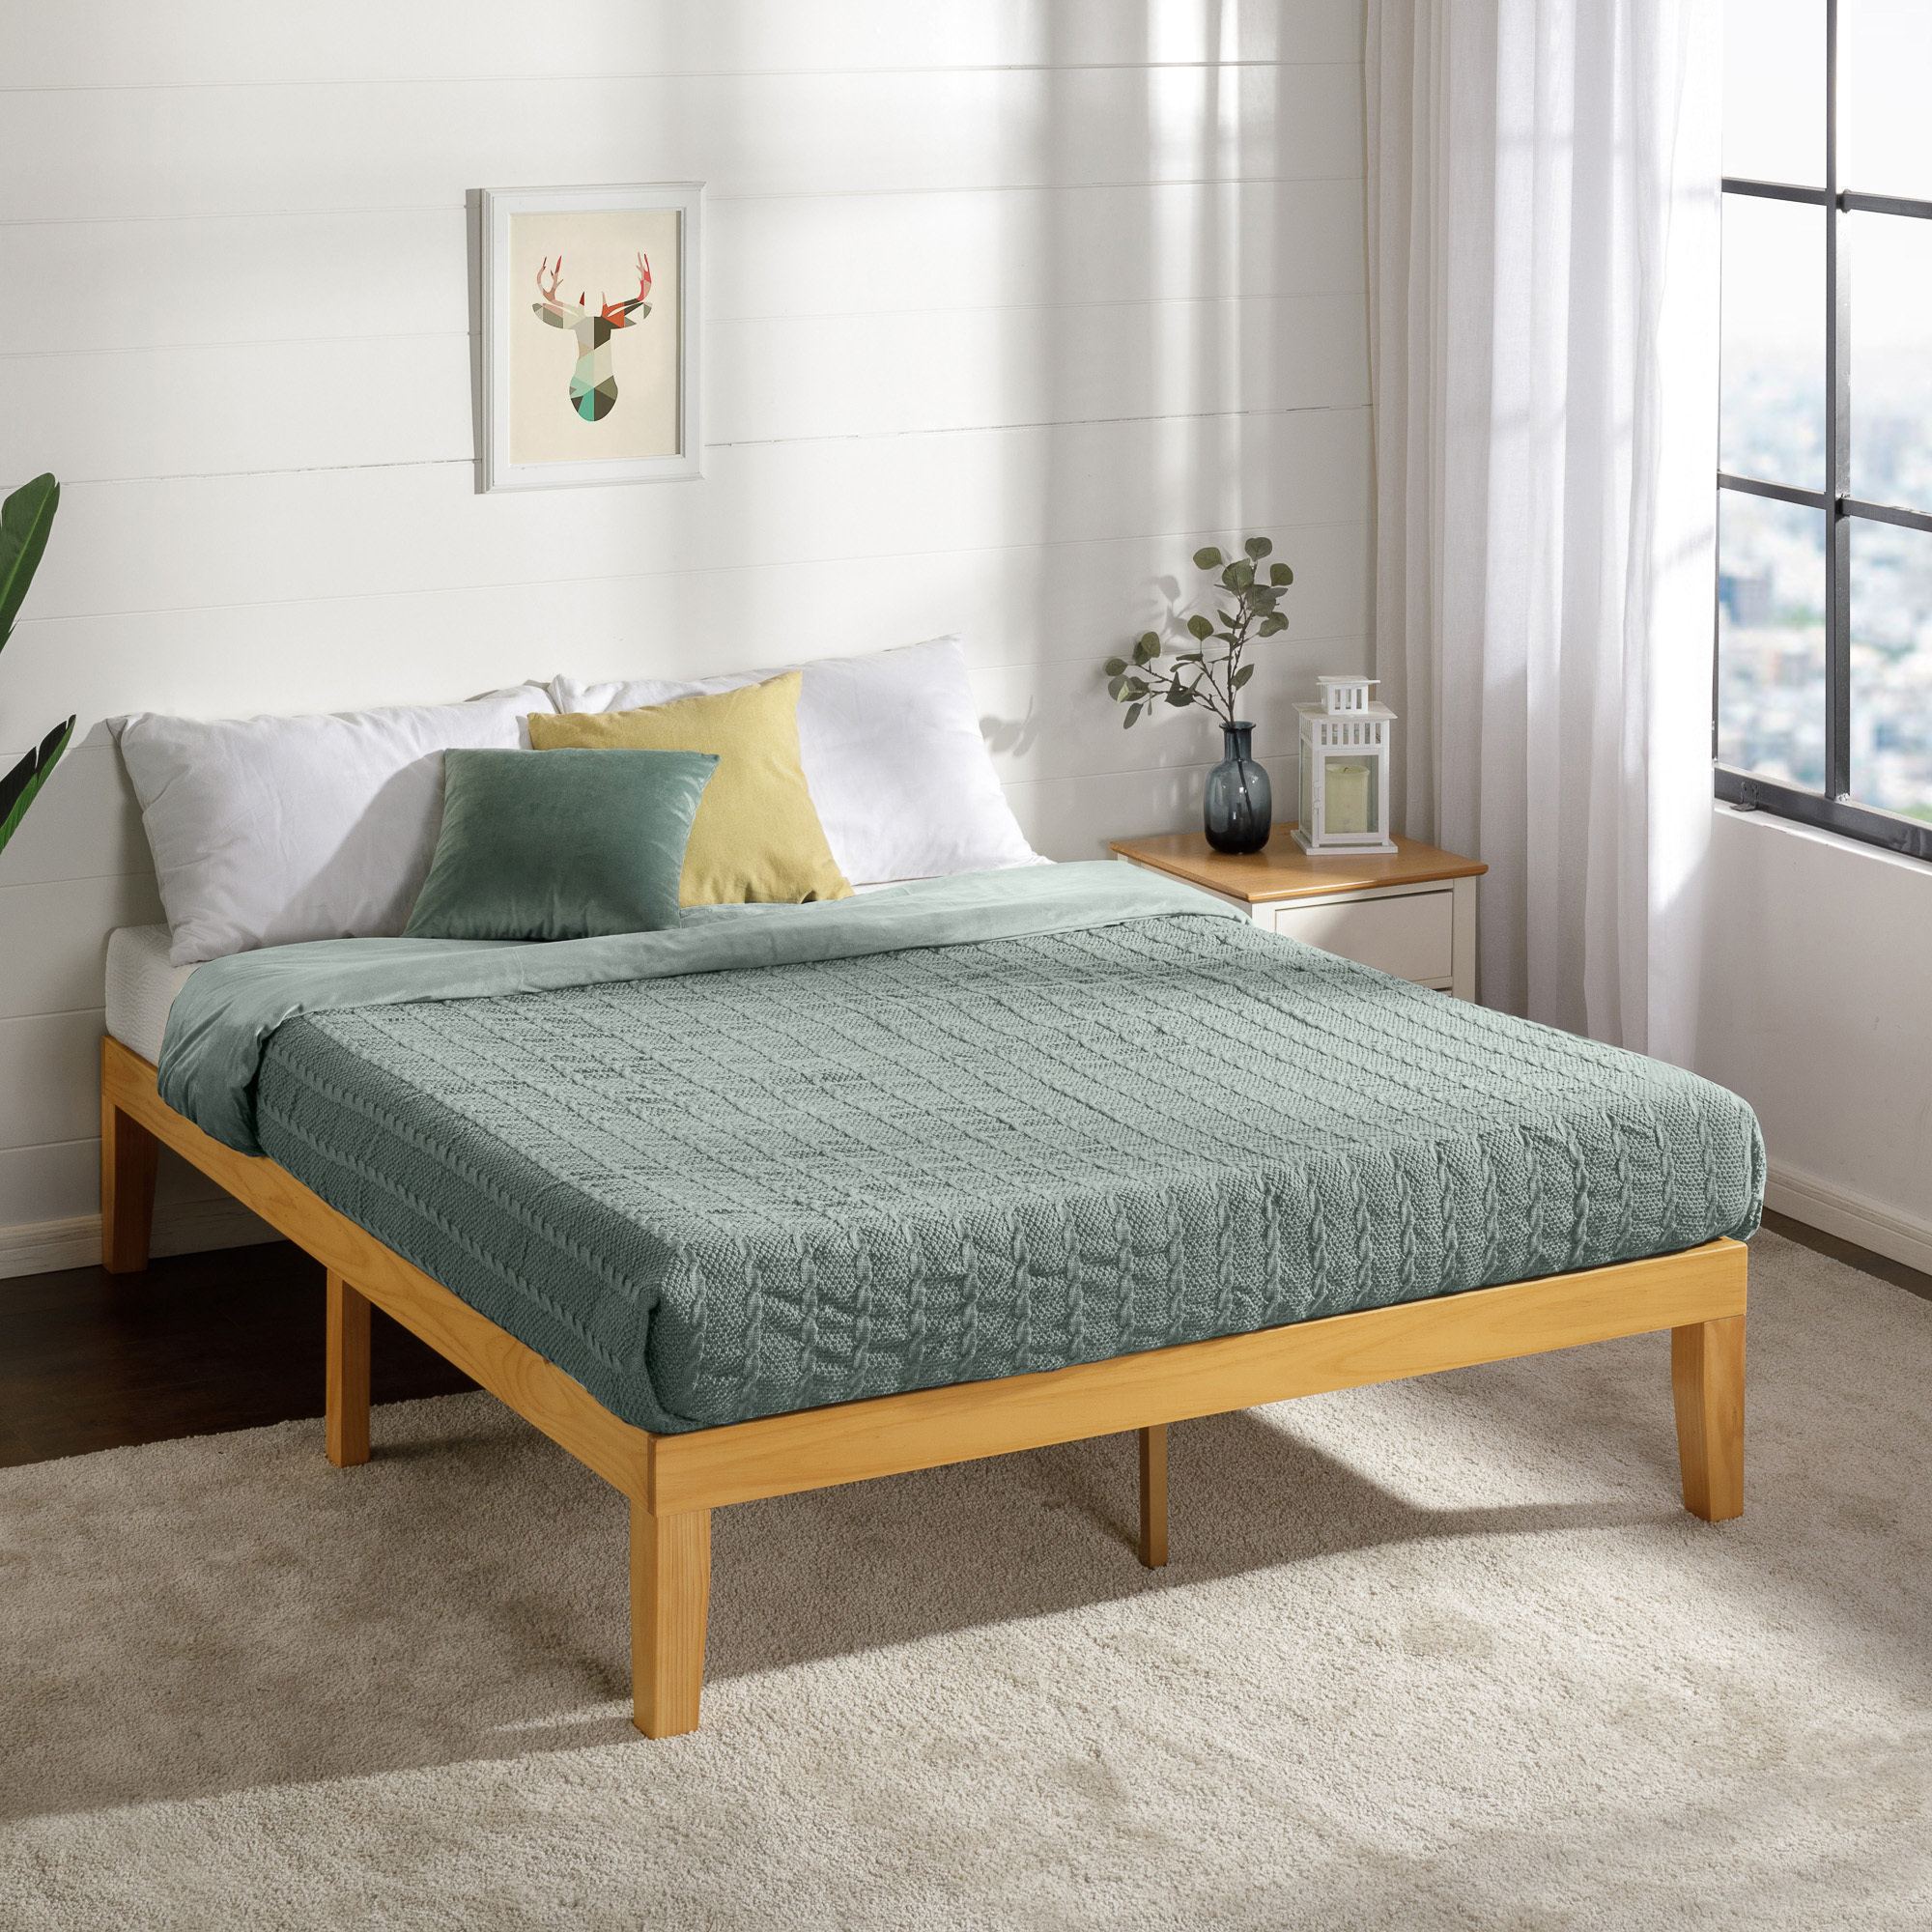 Picture of: Studio Home Natural Belvedere Wooden Bed Base Reviews Temple Webster